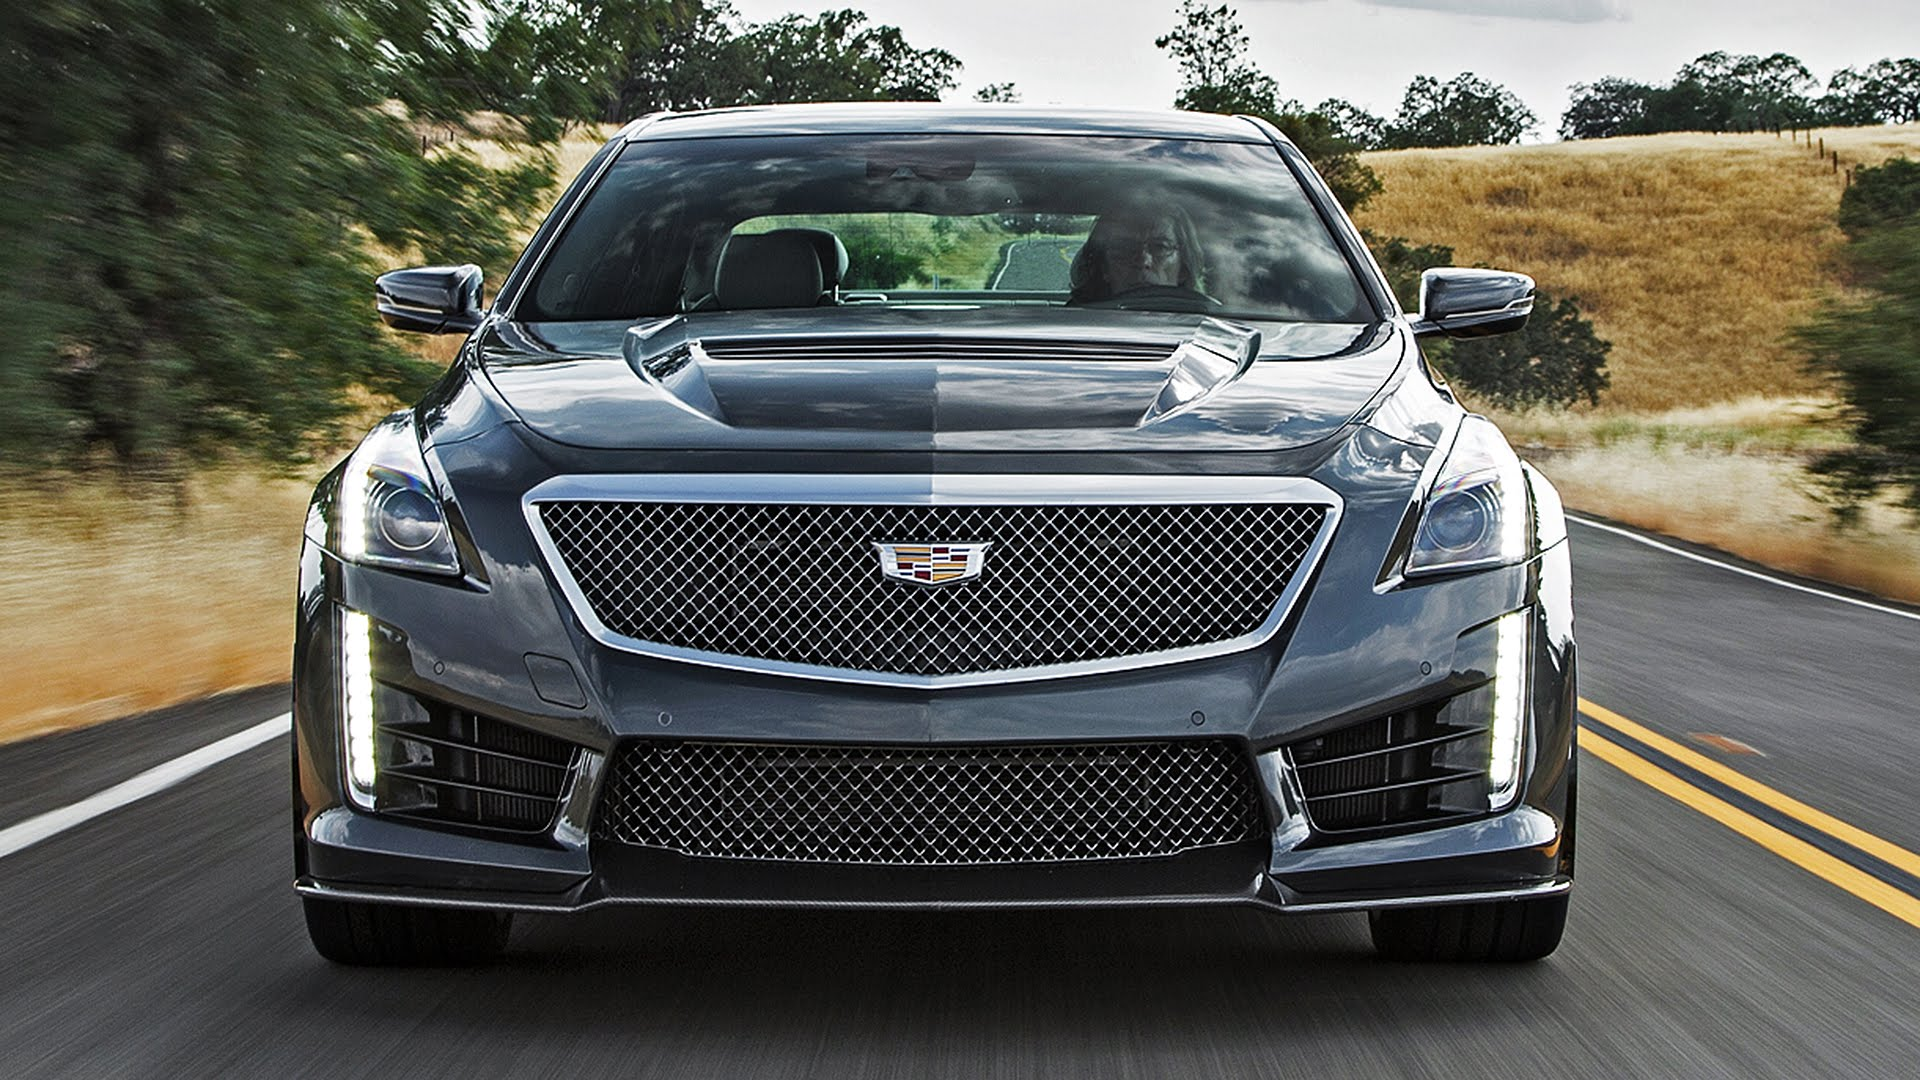 Is This Cadillac With A Corvette Engine The Most Incredible Car You Have Ever Seen